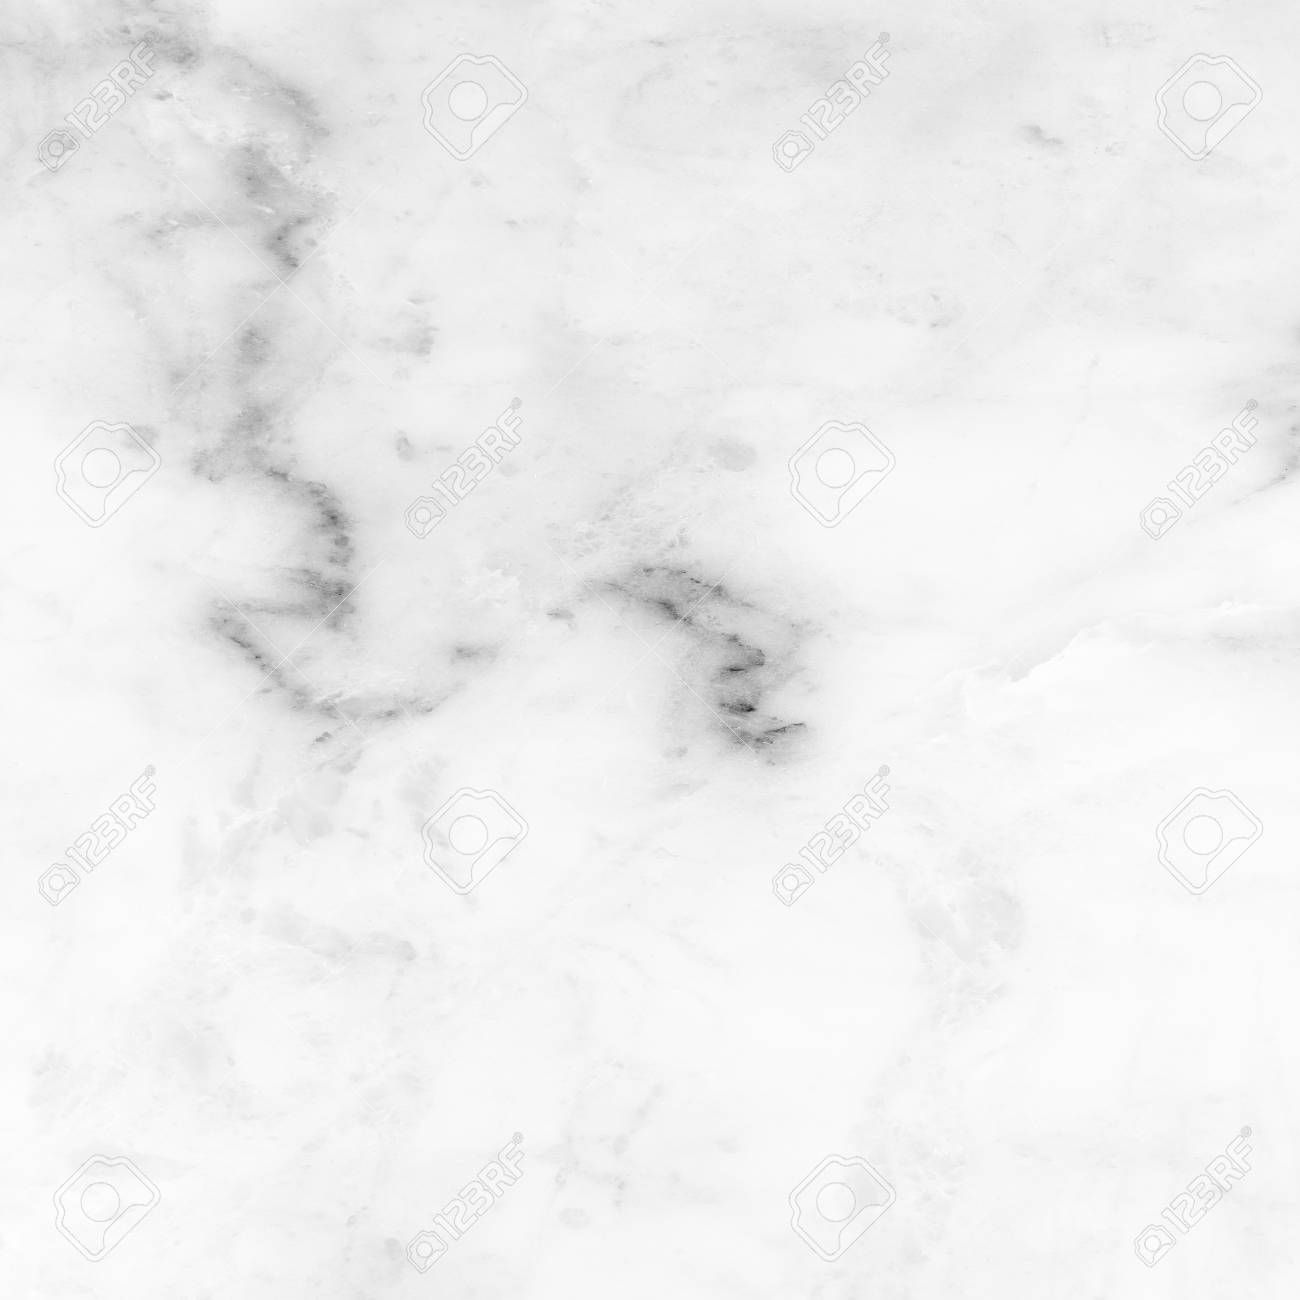 White Marble Texture Background Pattern With High Resolution Sponsored Sponsored Textur In 2020 Business Card Template Design Textured Background Marble Texture